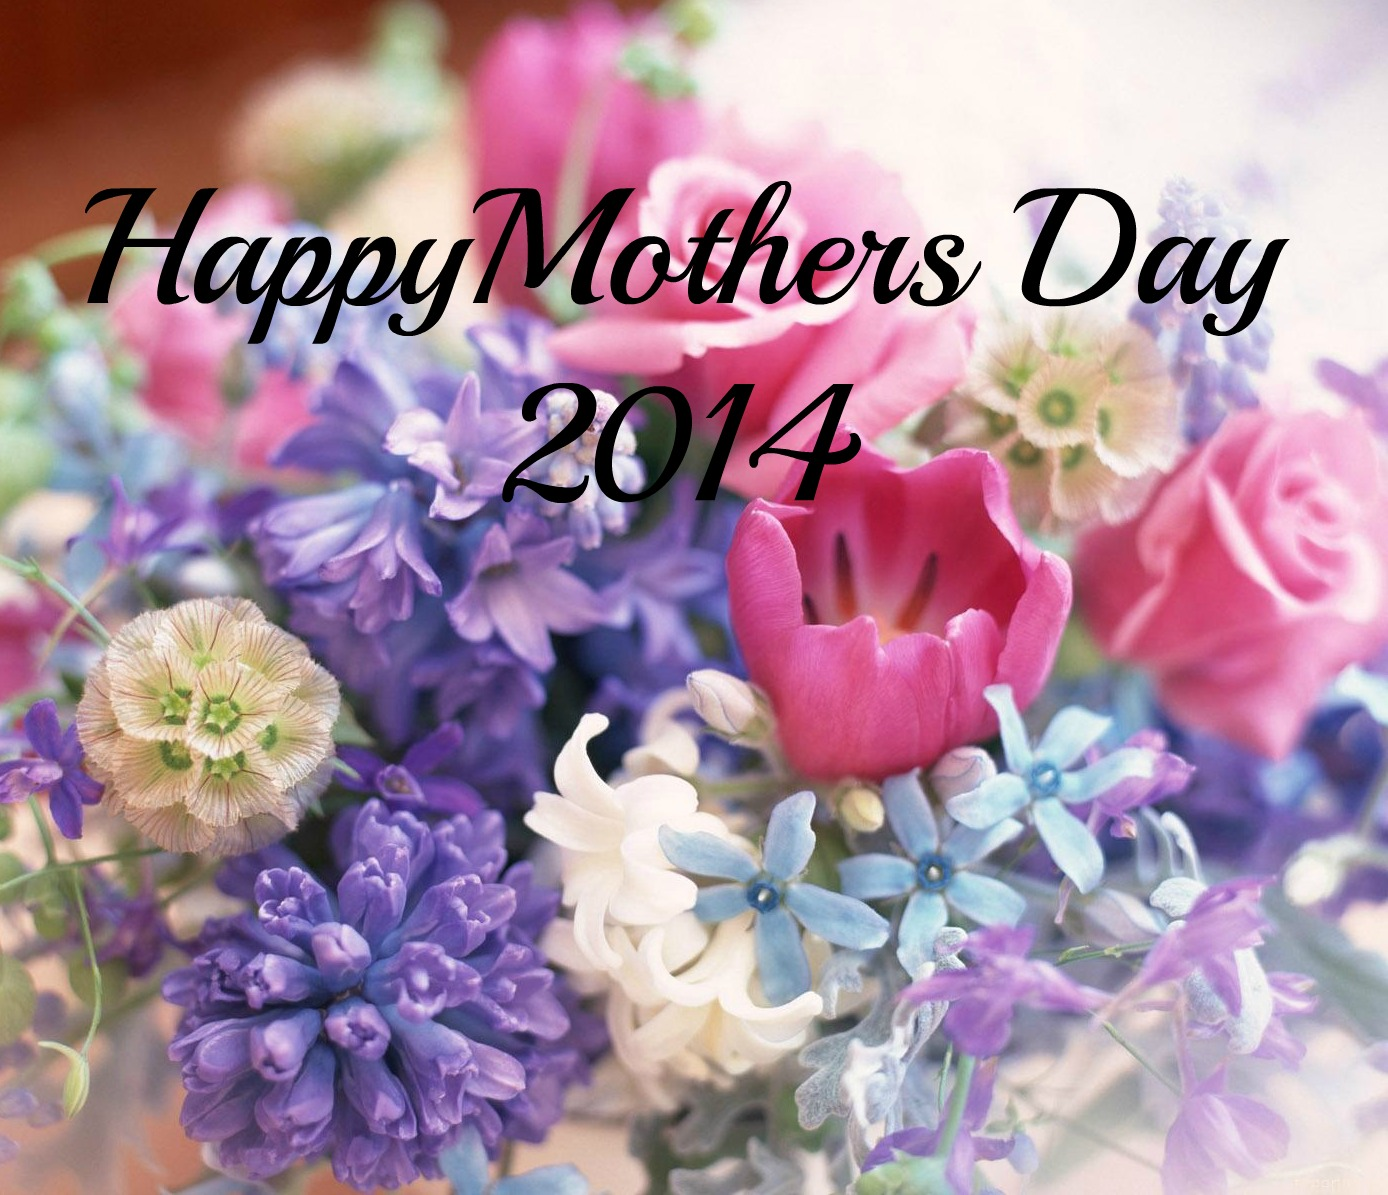 Download Free Love Disappointment Wallpaper Quotes Have A Happy Mother S Day 2014 We Magazine For Women